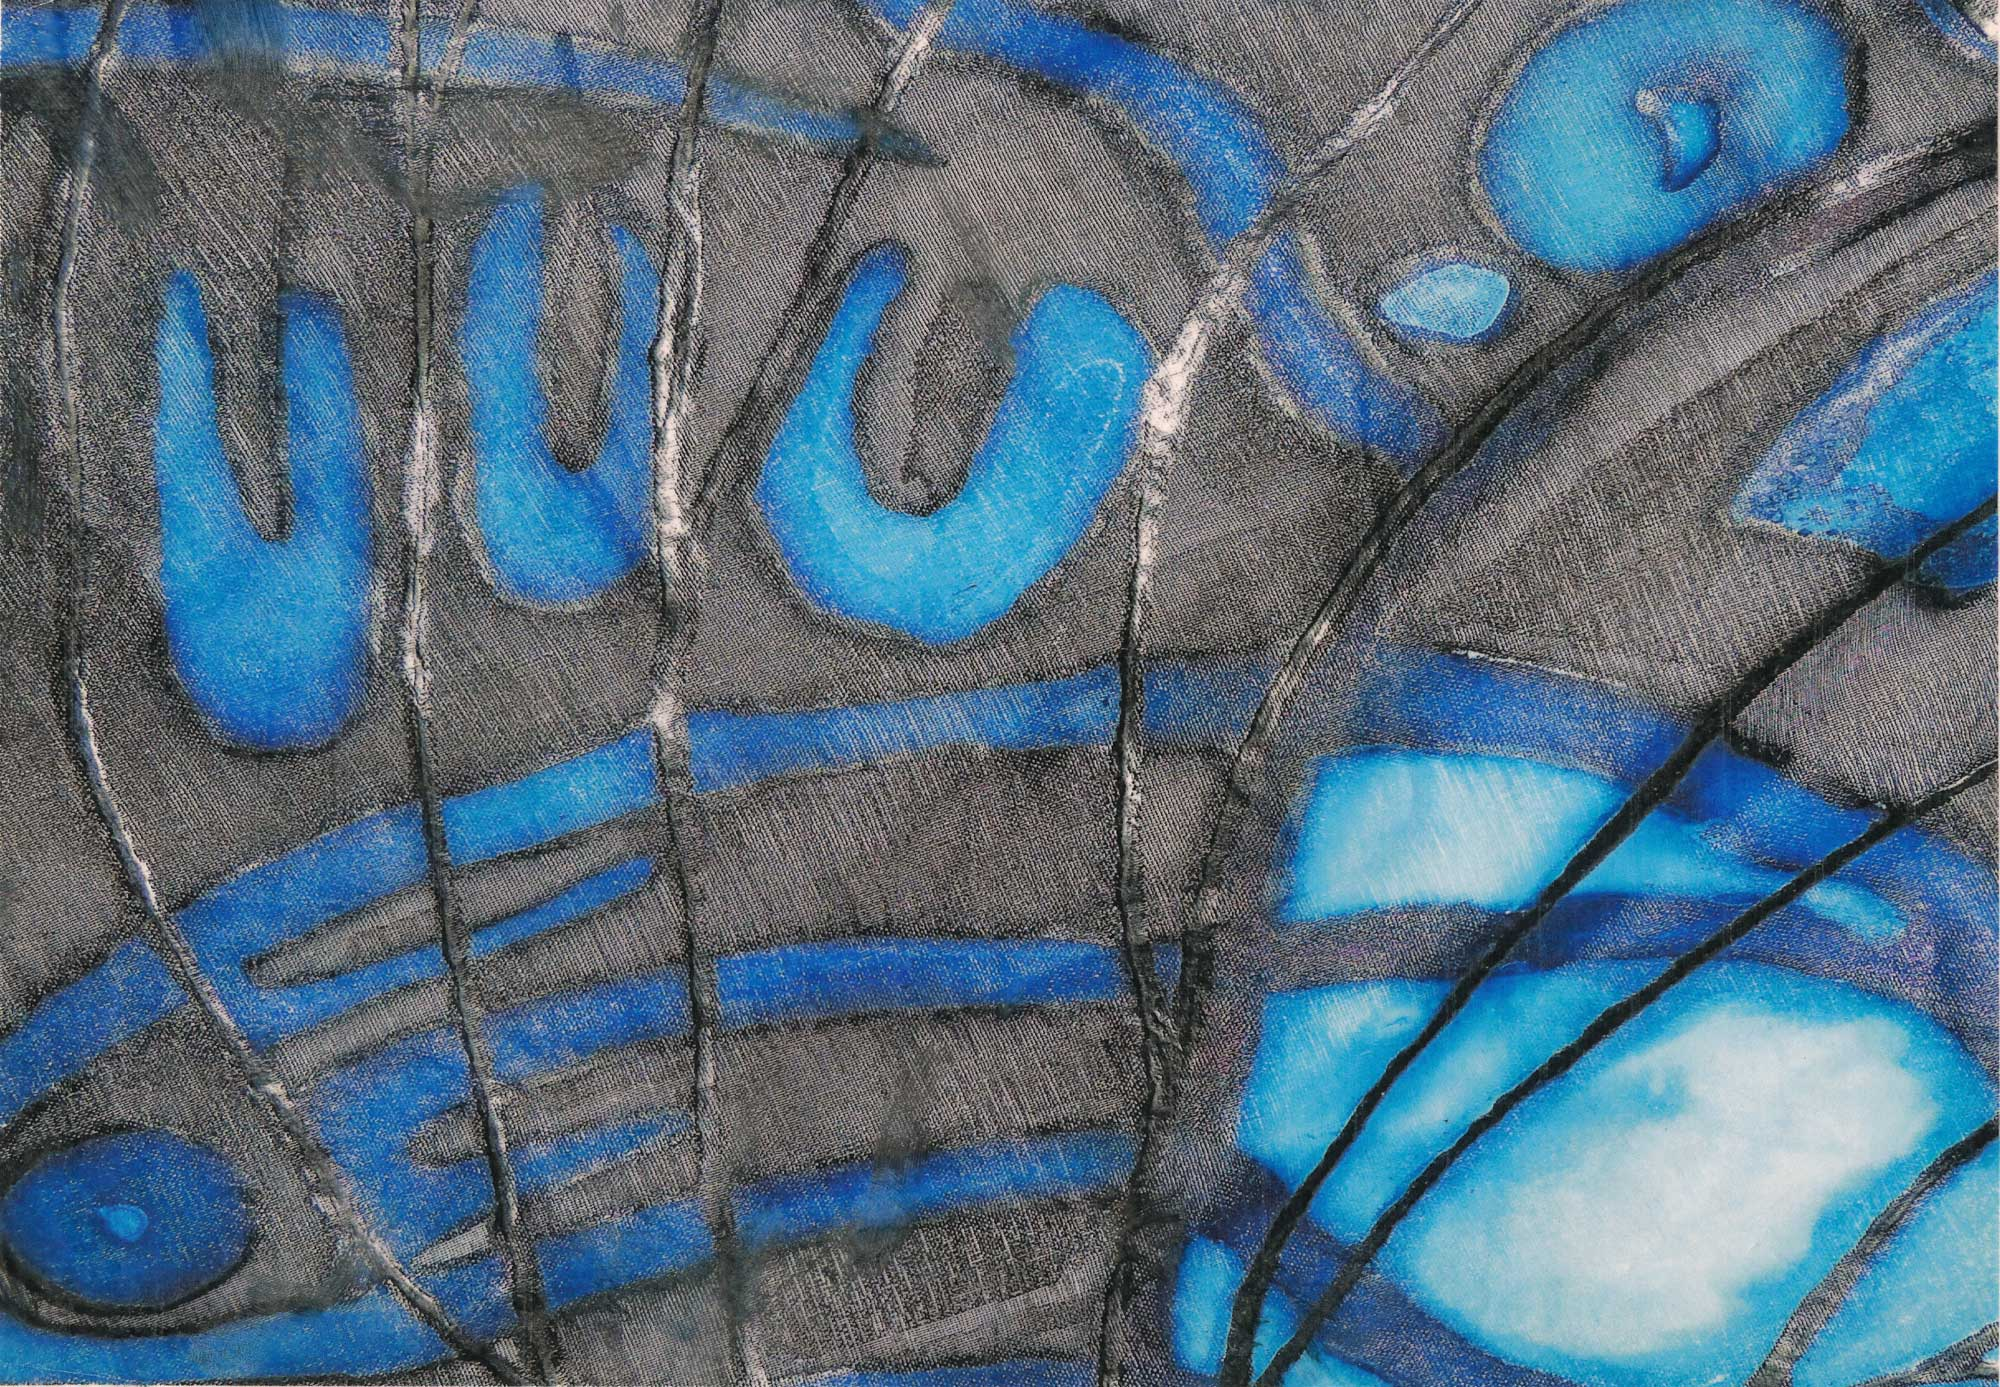 Silk painting of butterfly wings in blue and black, close-up